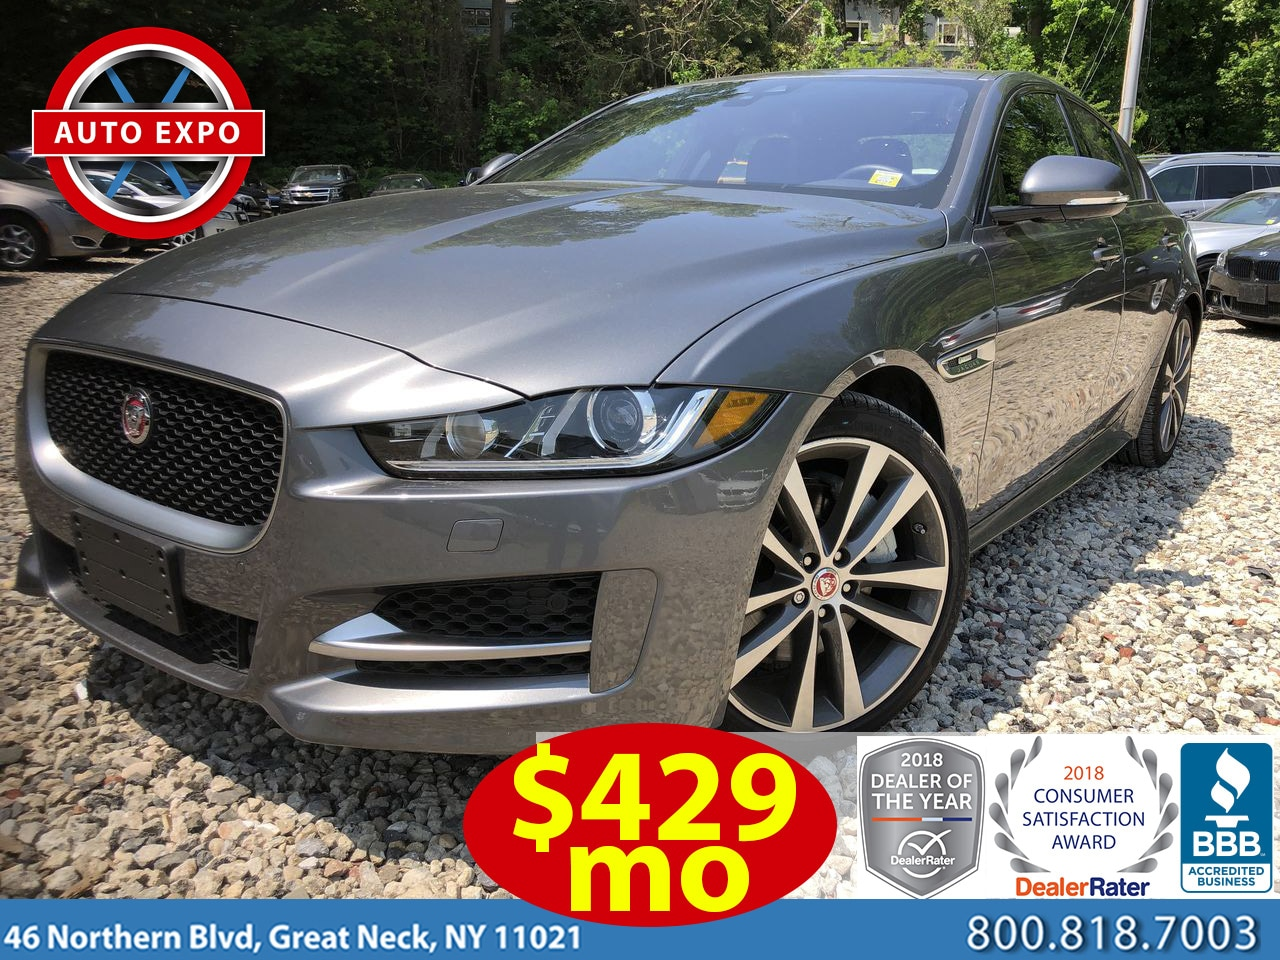 Used 2017 Jaguar XE R Sport Sedan For Sale Great Neck, NY